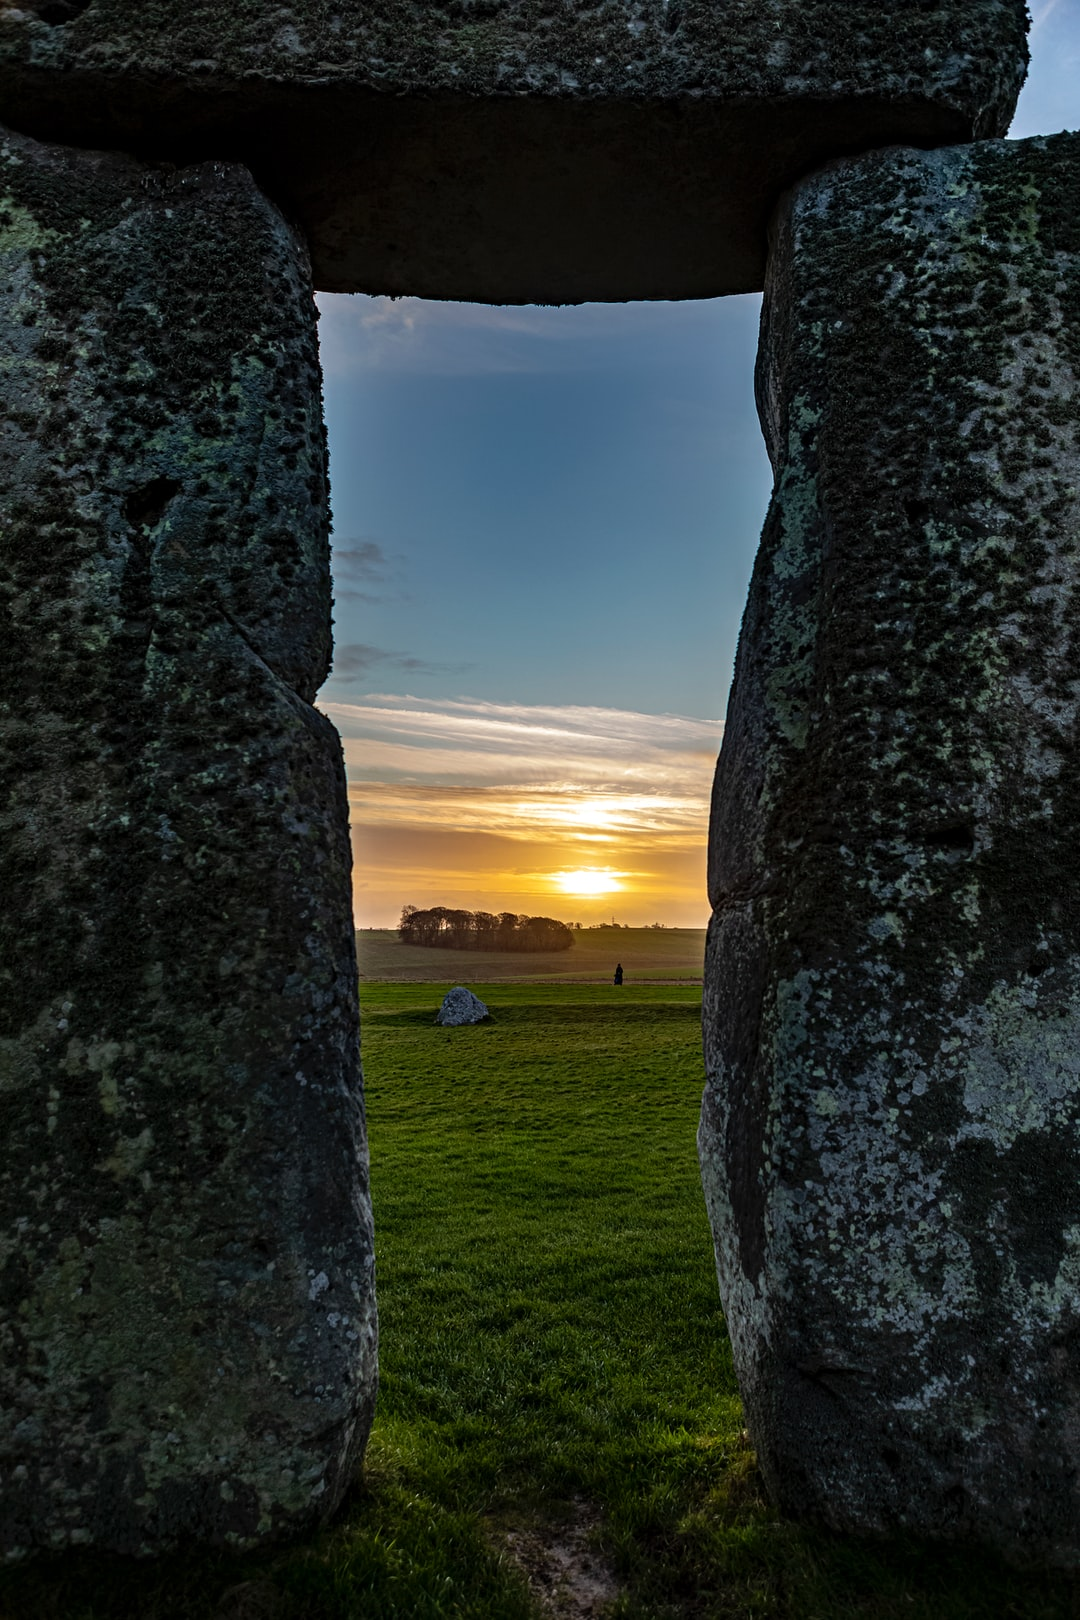 Prehistoric ritual site of Stonehenge with monliths - large stone slabs in rural England, UK. February 2020. Sunrise time.